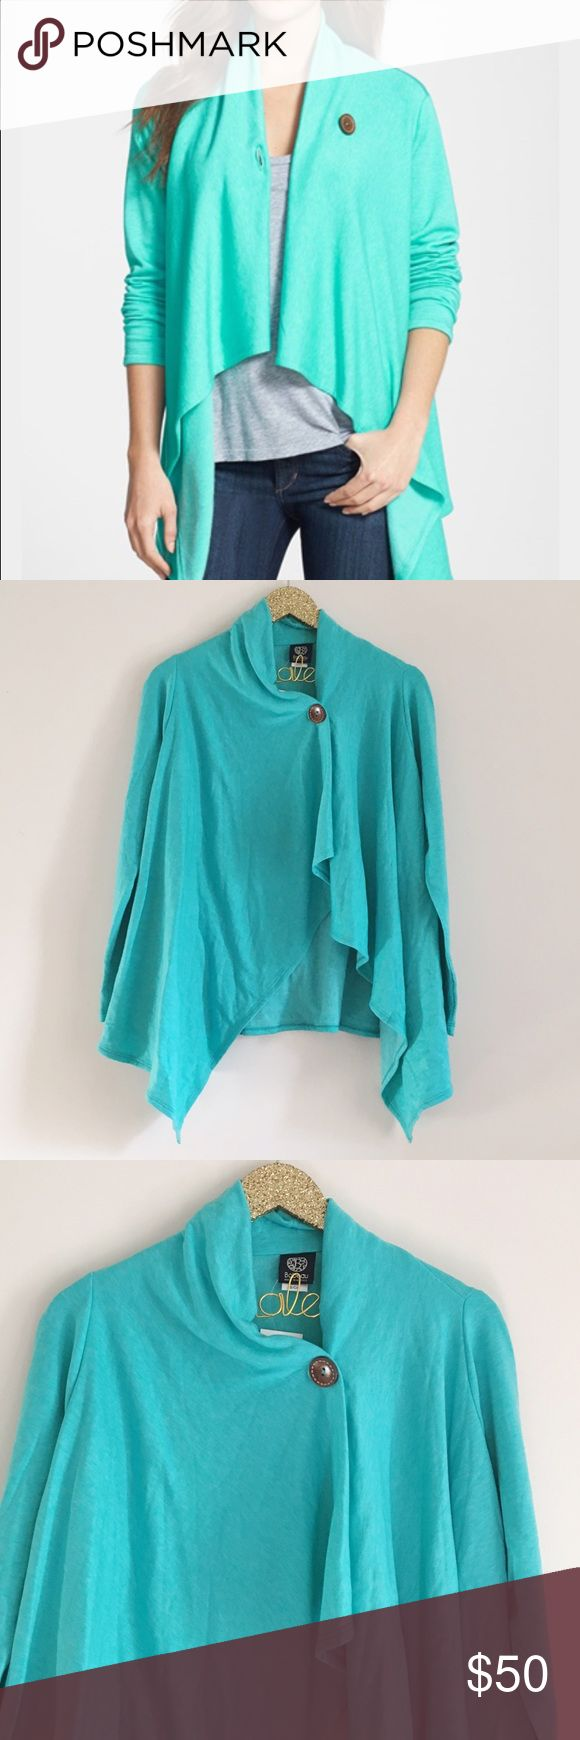 Bobeau One-Button Turquoise Cardigan NWT. Bobeau one-Button turquoise Cardigan. So soft & comfy! Fleece inside. Brown Button detail. Size S. No modeling/trades. bobeau Sweaters Cardigans